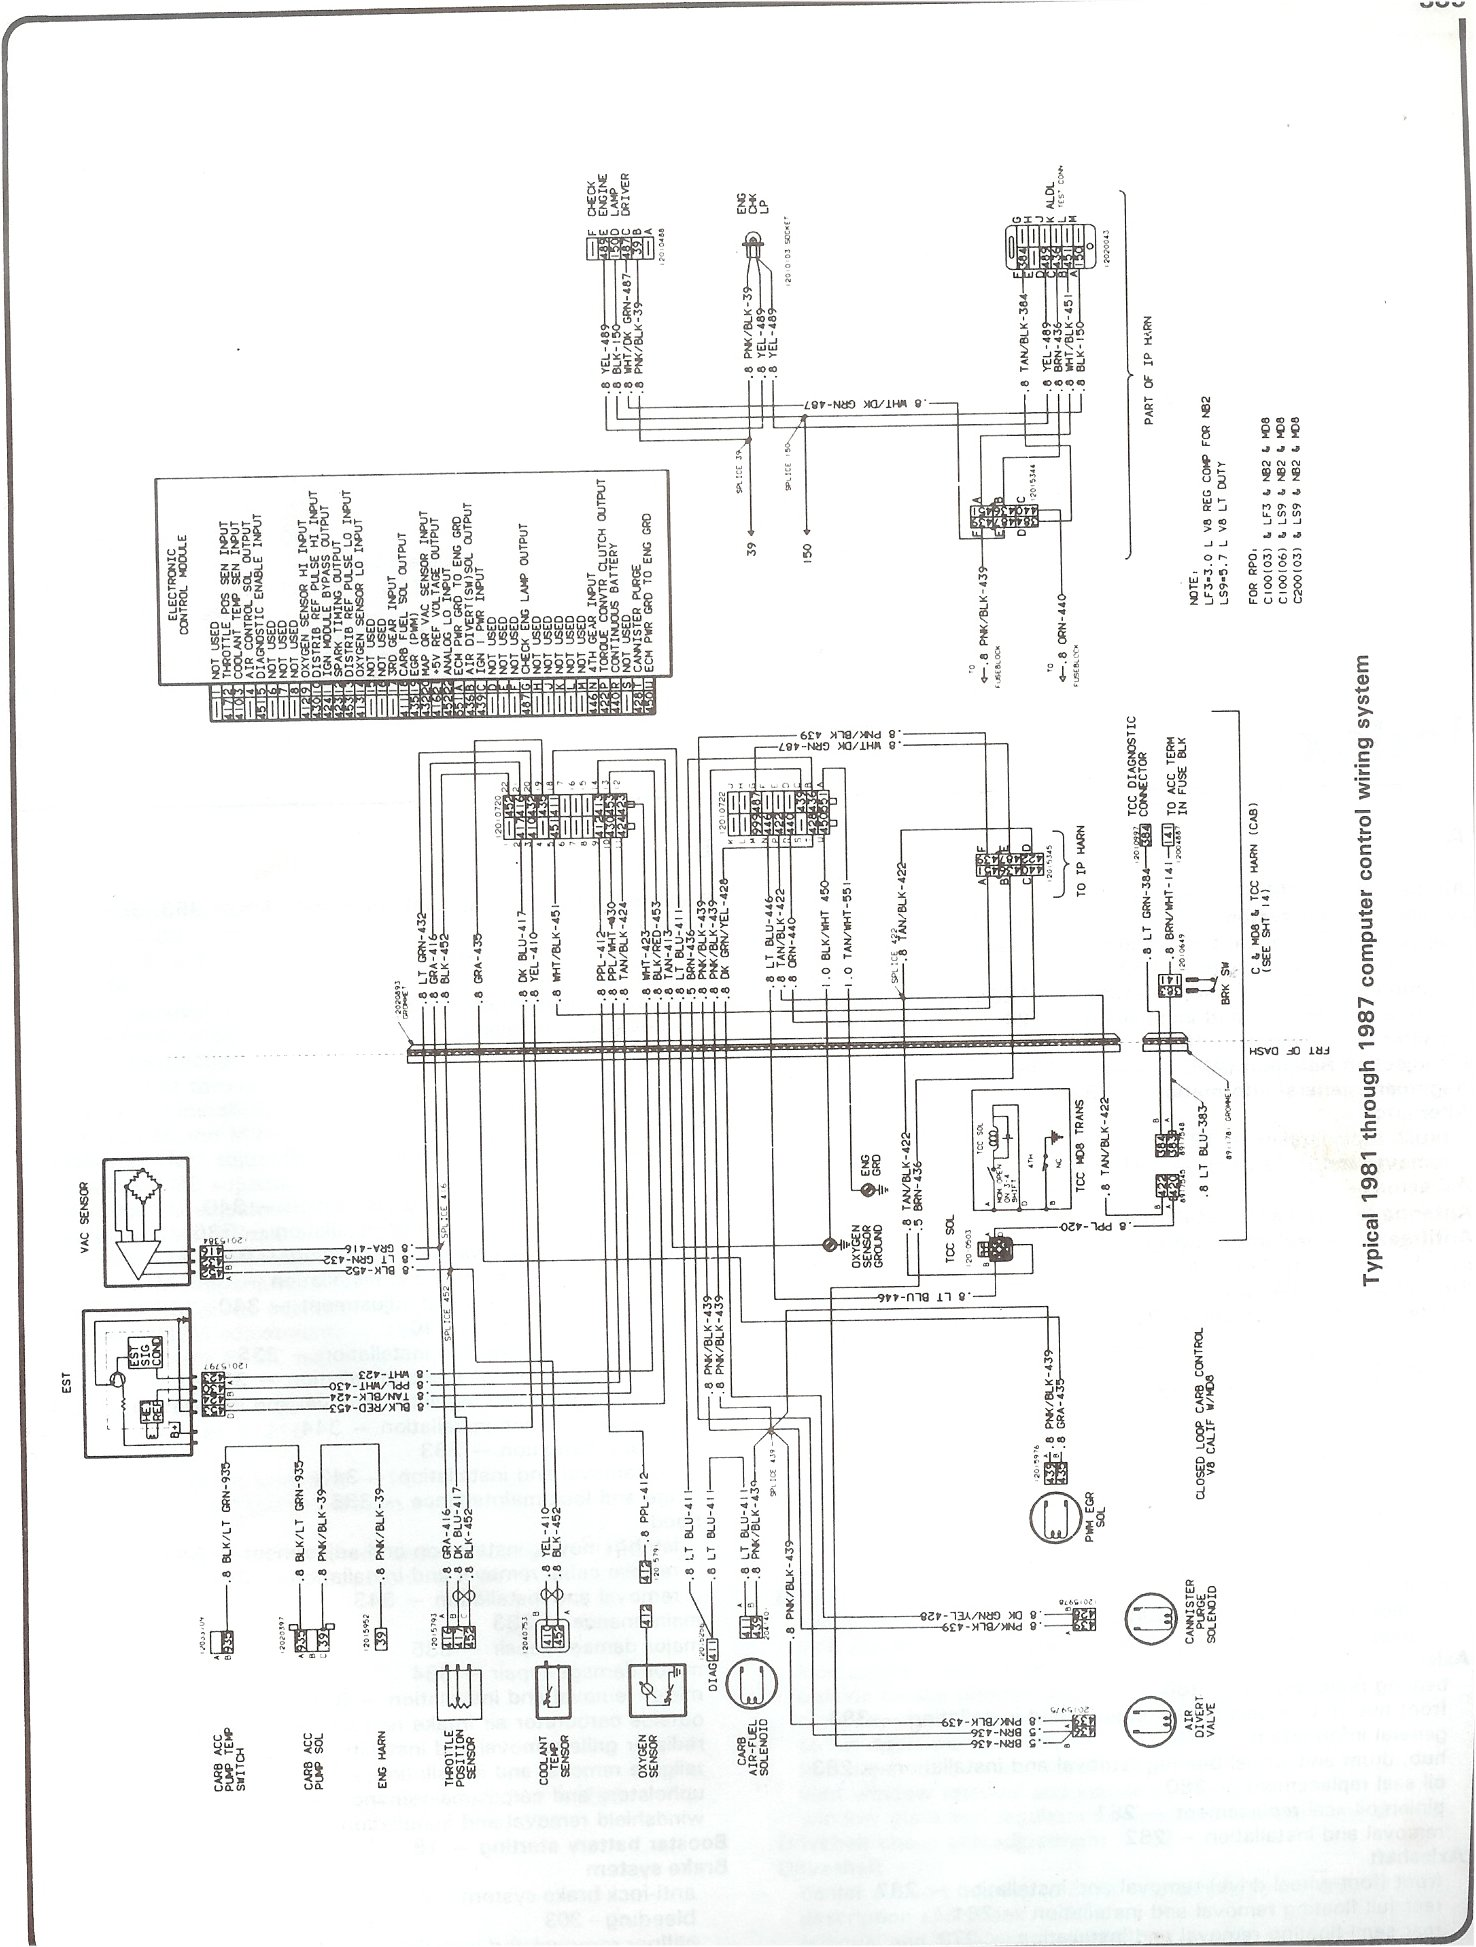 Chevy Motor Wiring Diagram Push Button Radio Circuit Of 1958 Chevrolet Passenger Car Complete 73 87 Diagrams81 Computer Control